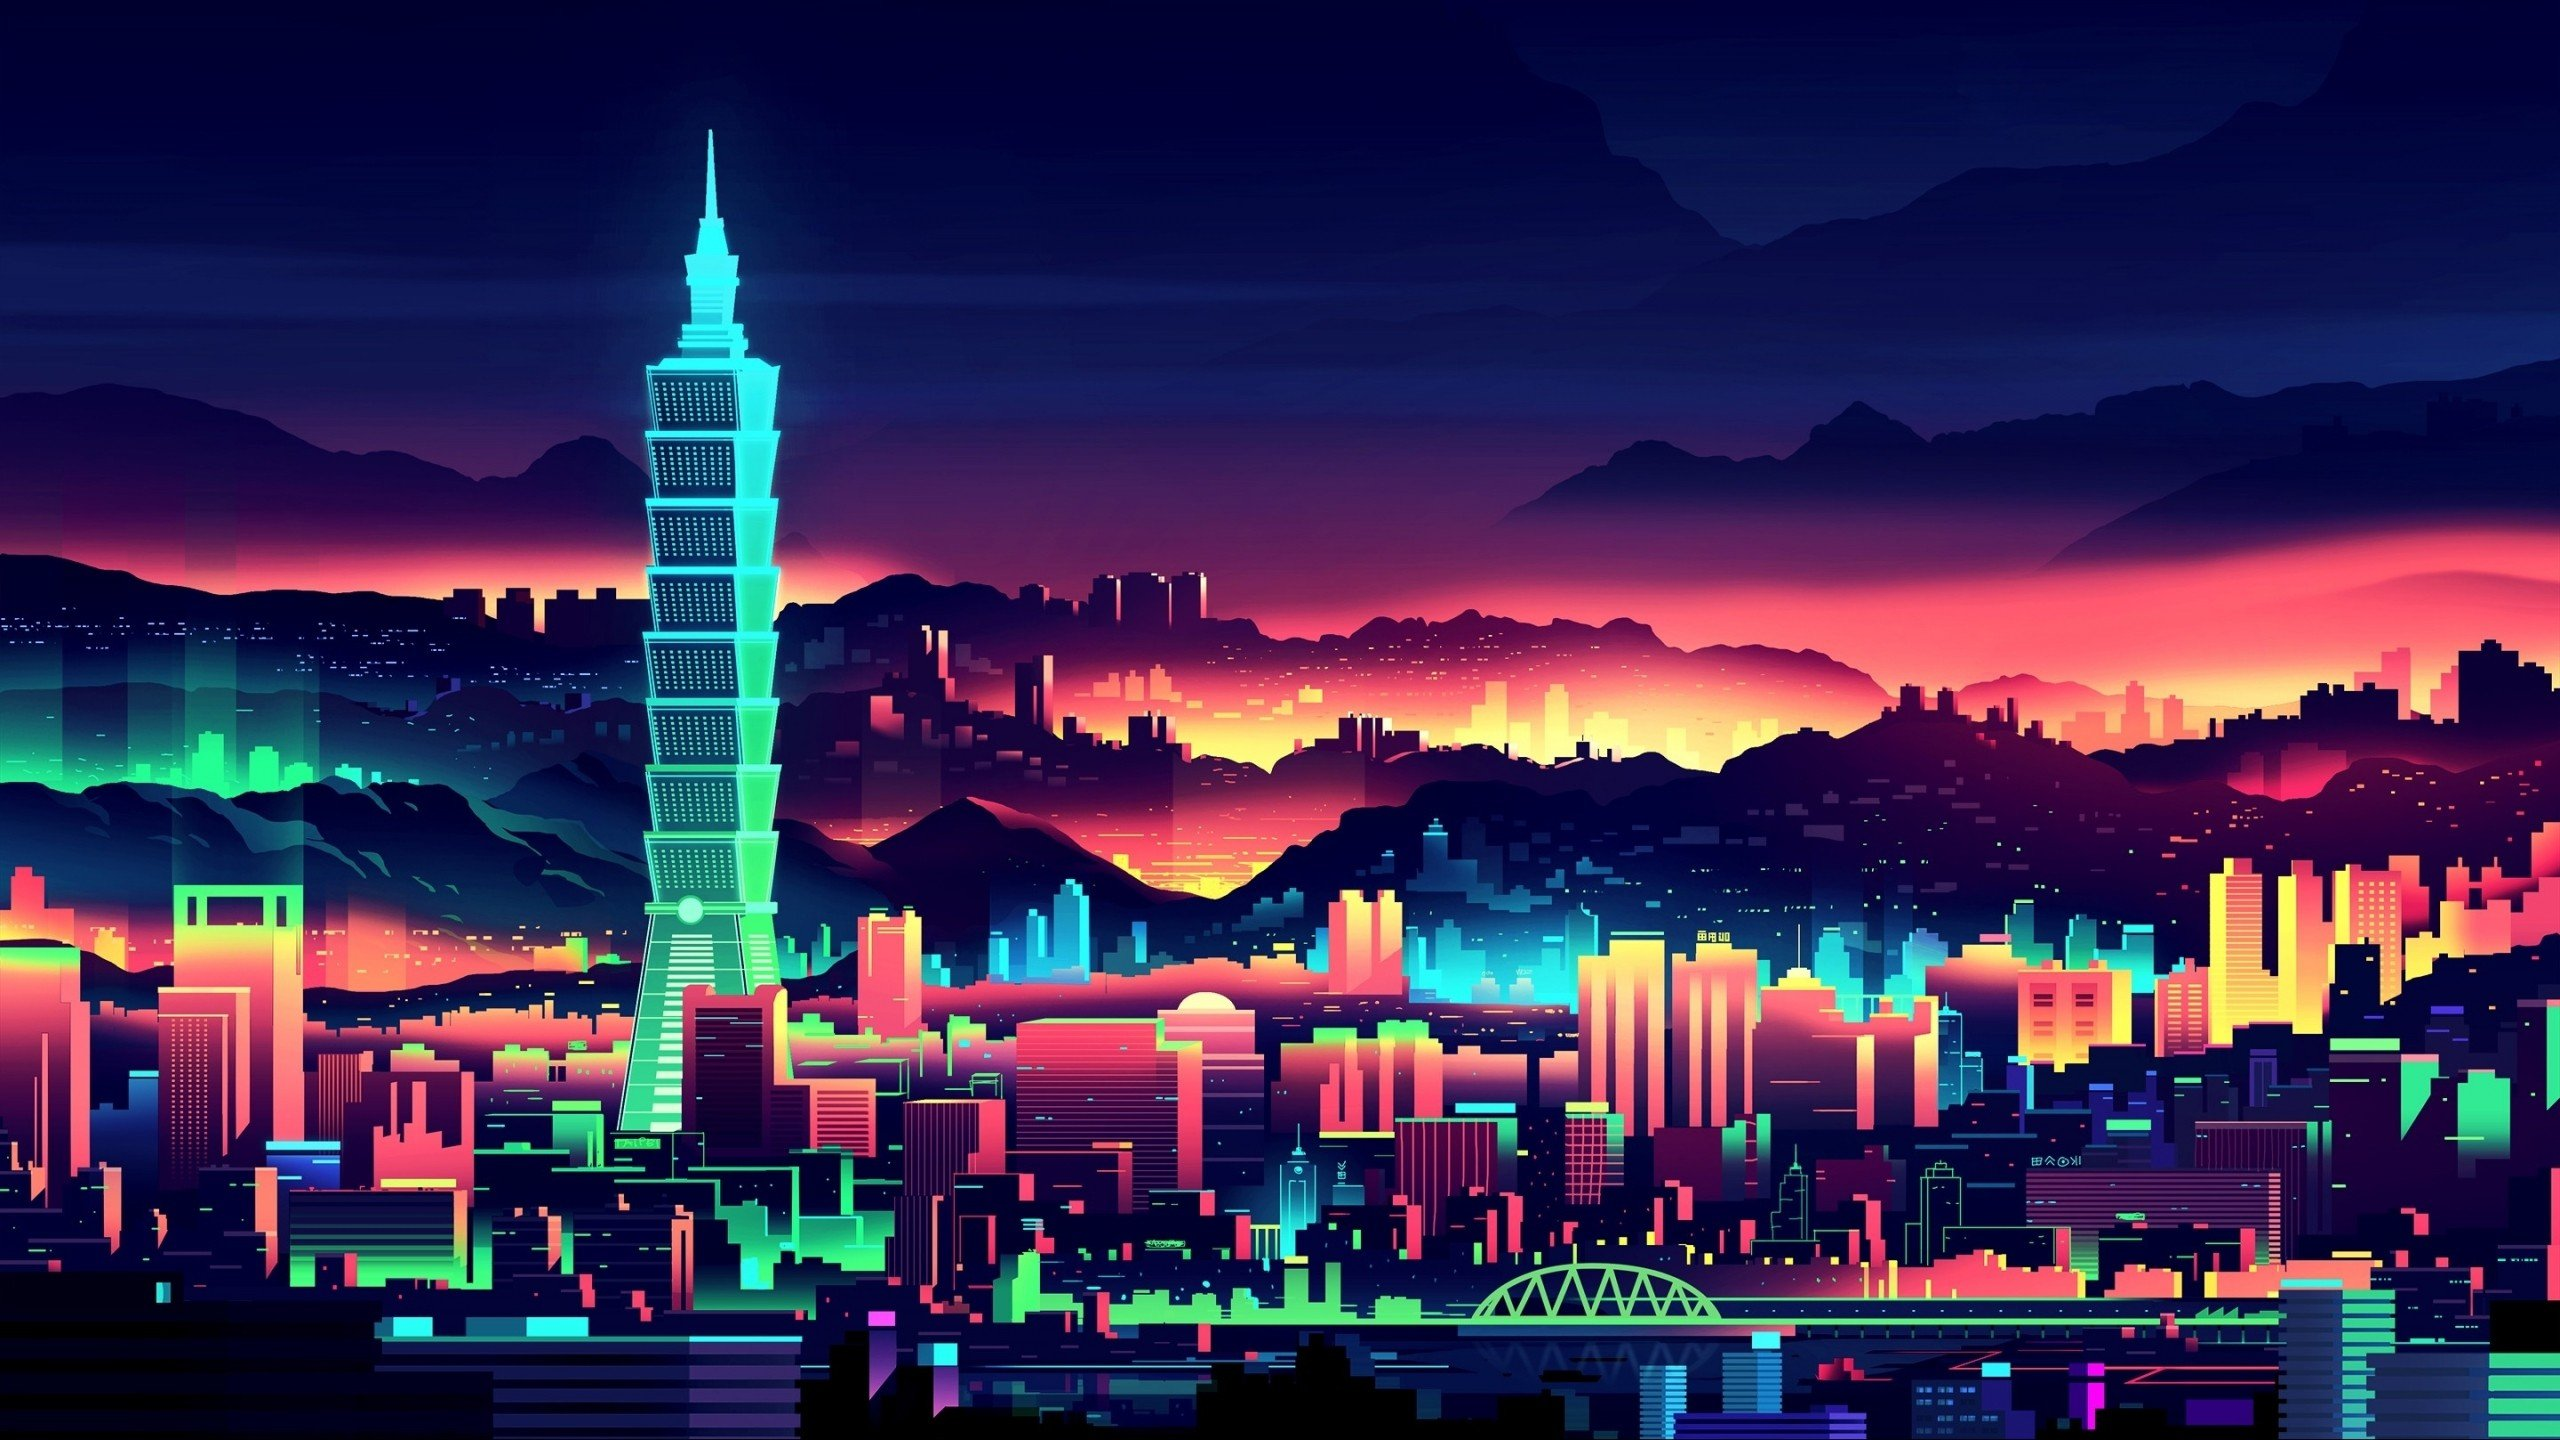 neon wallpapers, photos and desktop backgrounds up to 8K ...